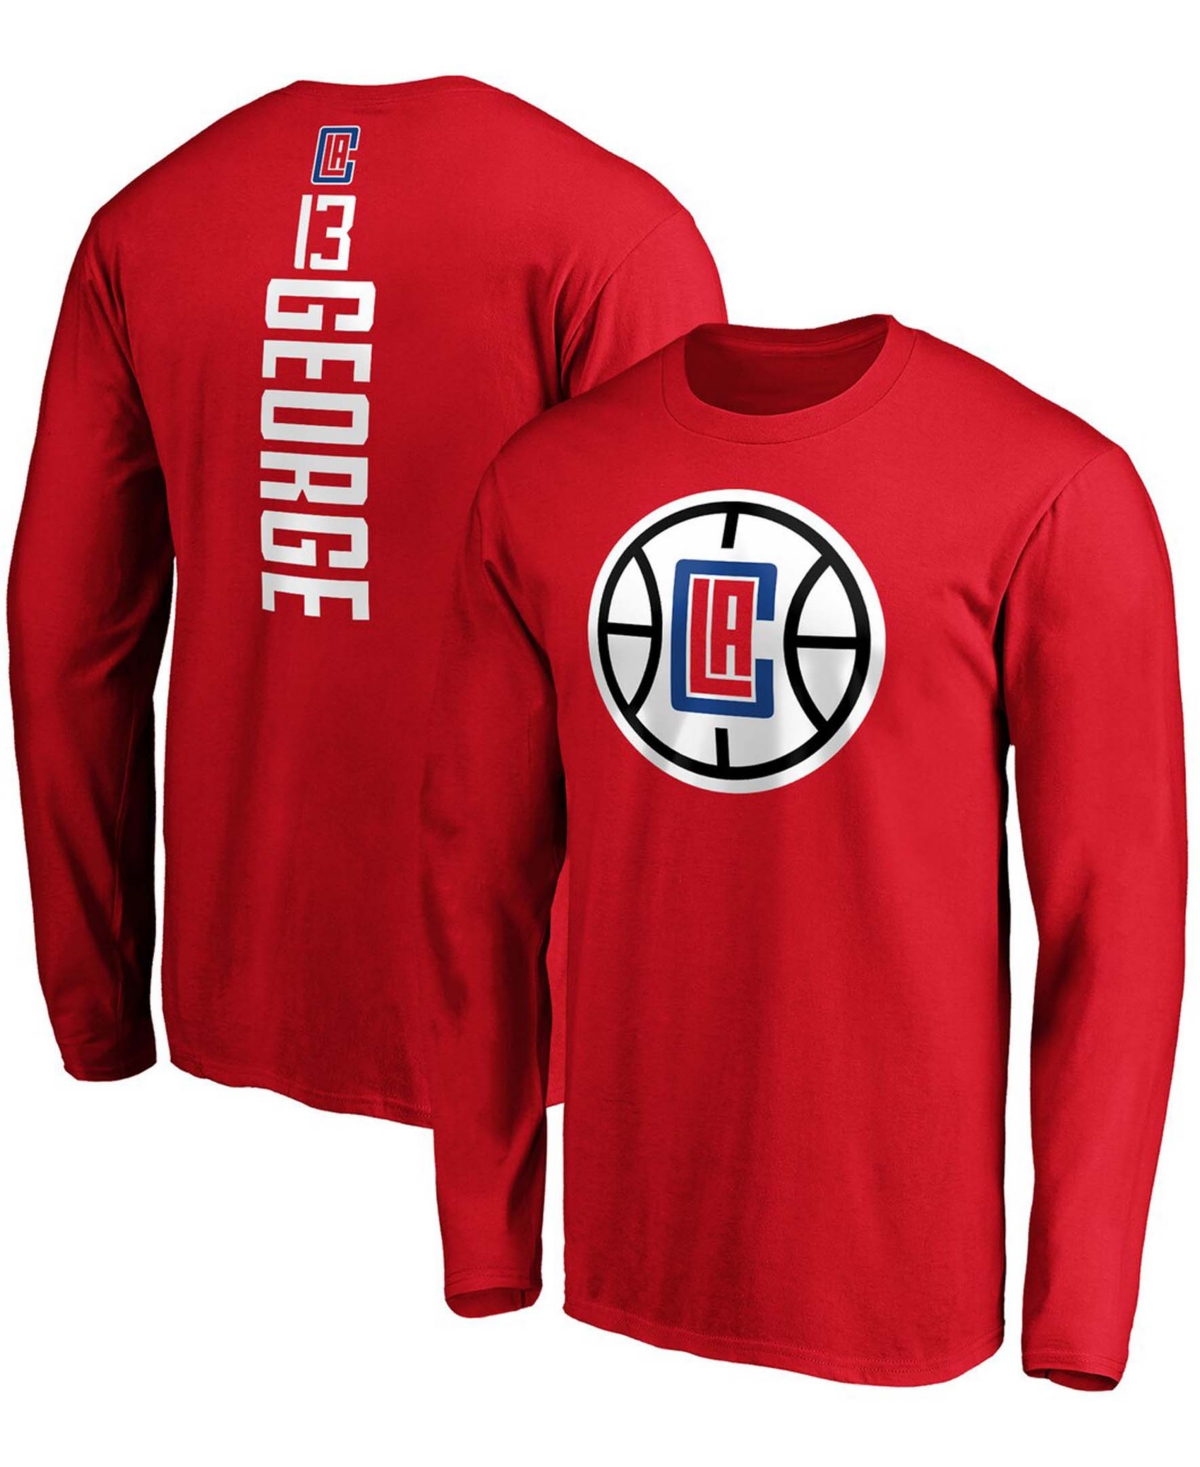 Men's Paul George Red La Clippers Team Playmaker Name and Number Long Sleeve T-shirt